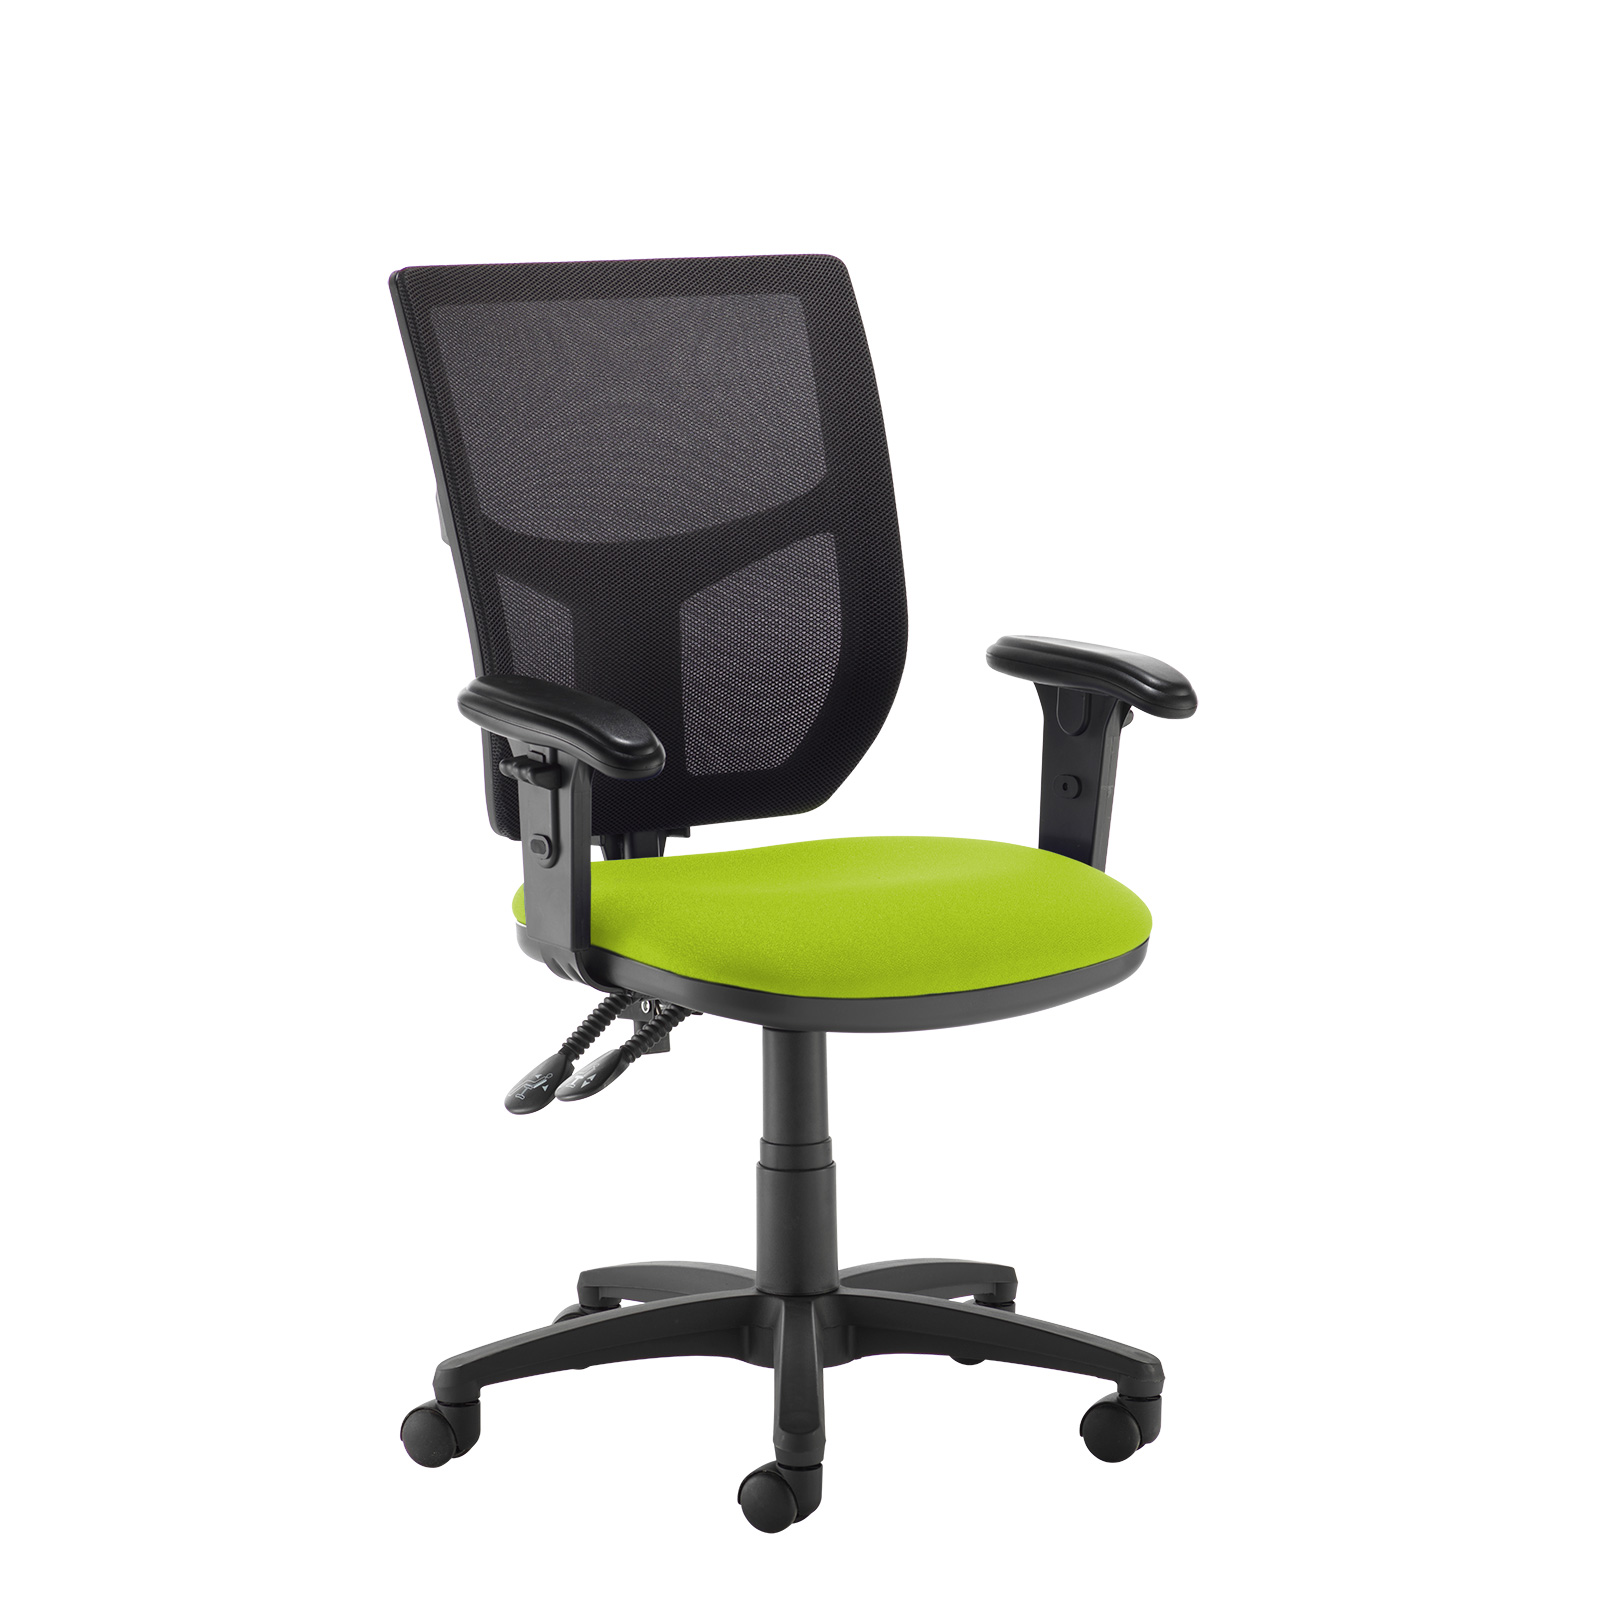 Altino 2 lever high mesh back operators chair with adjustable arms - green